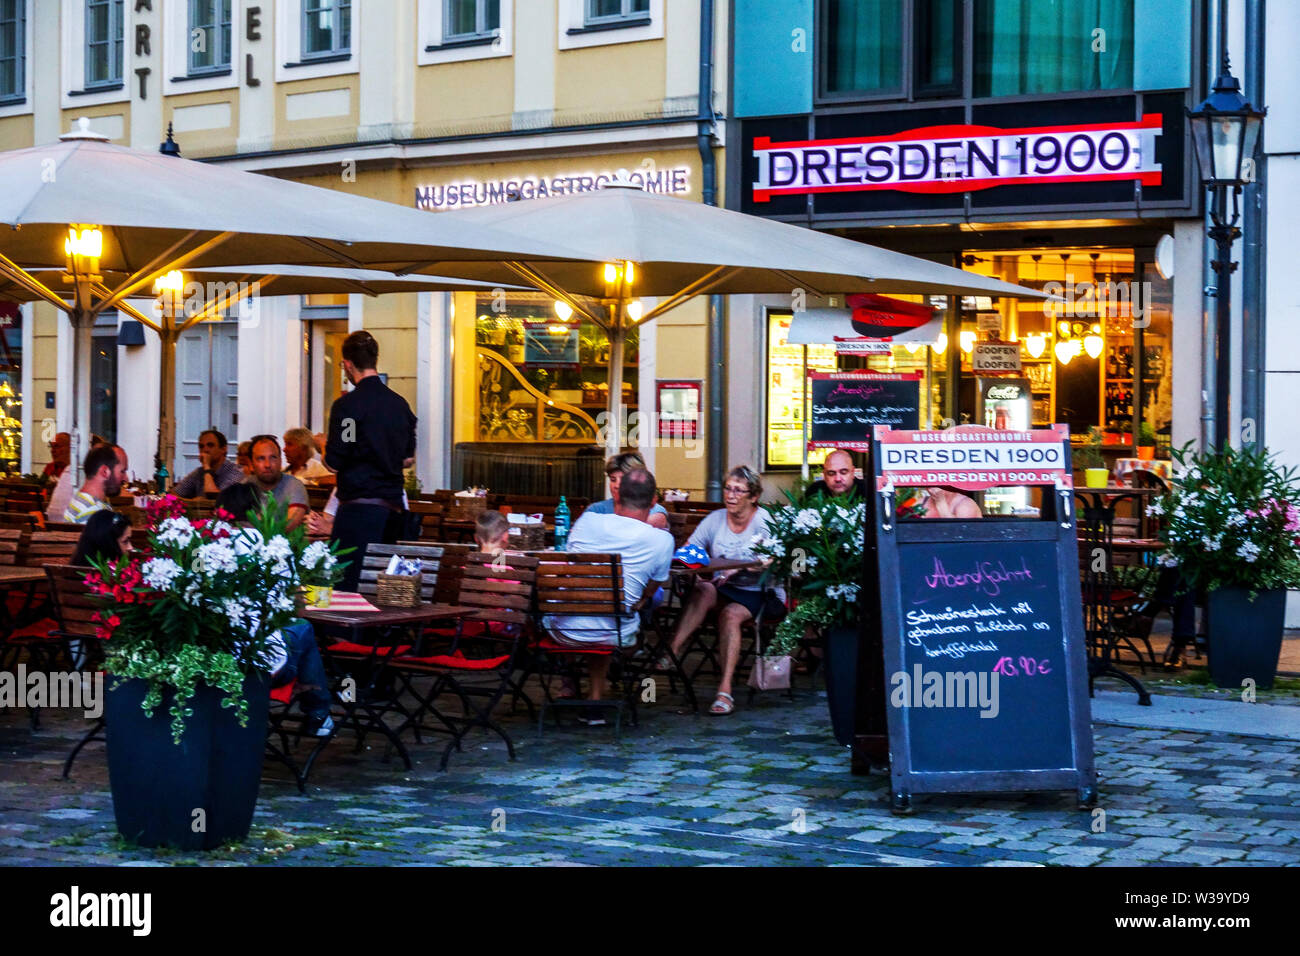 Dresden 1900 Restaurant, Old Town Germany - Stock Image